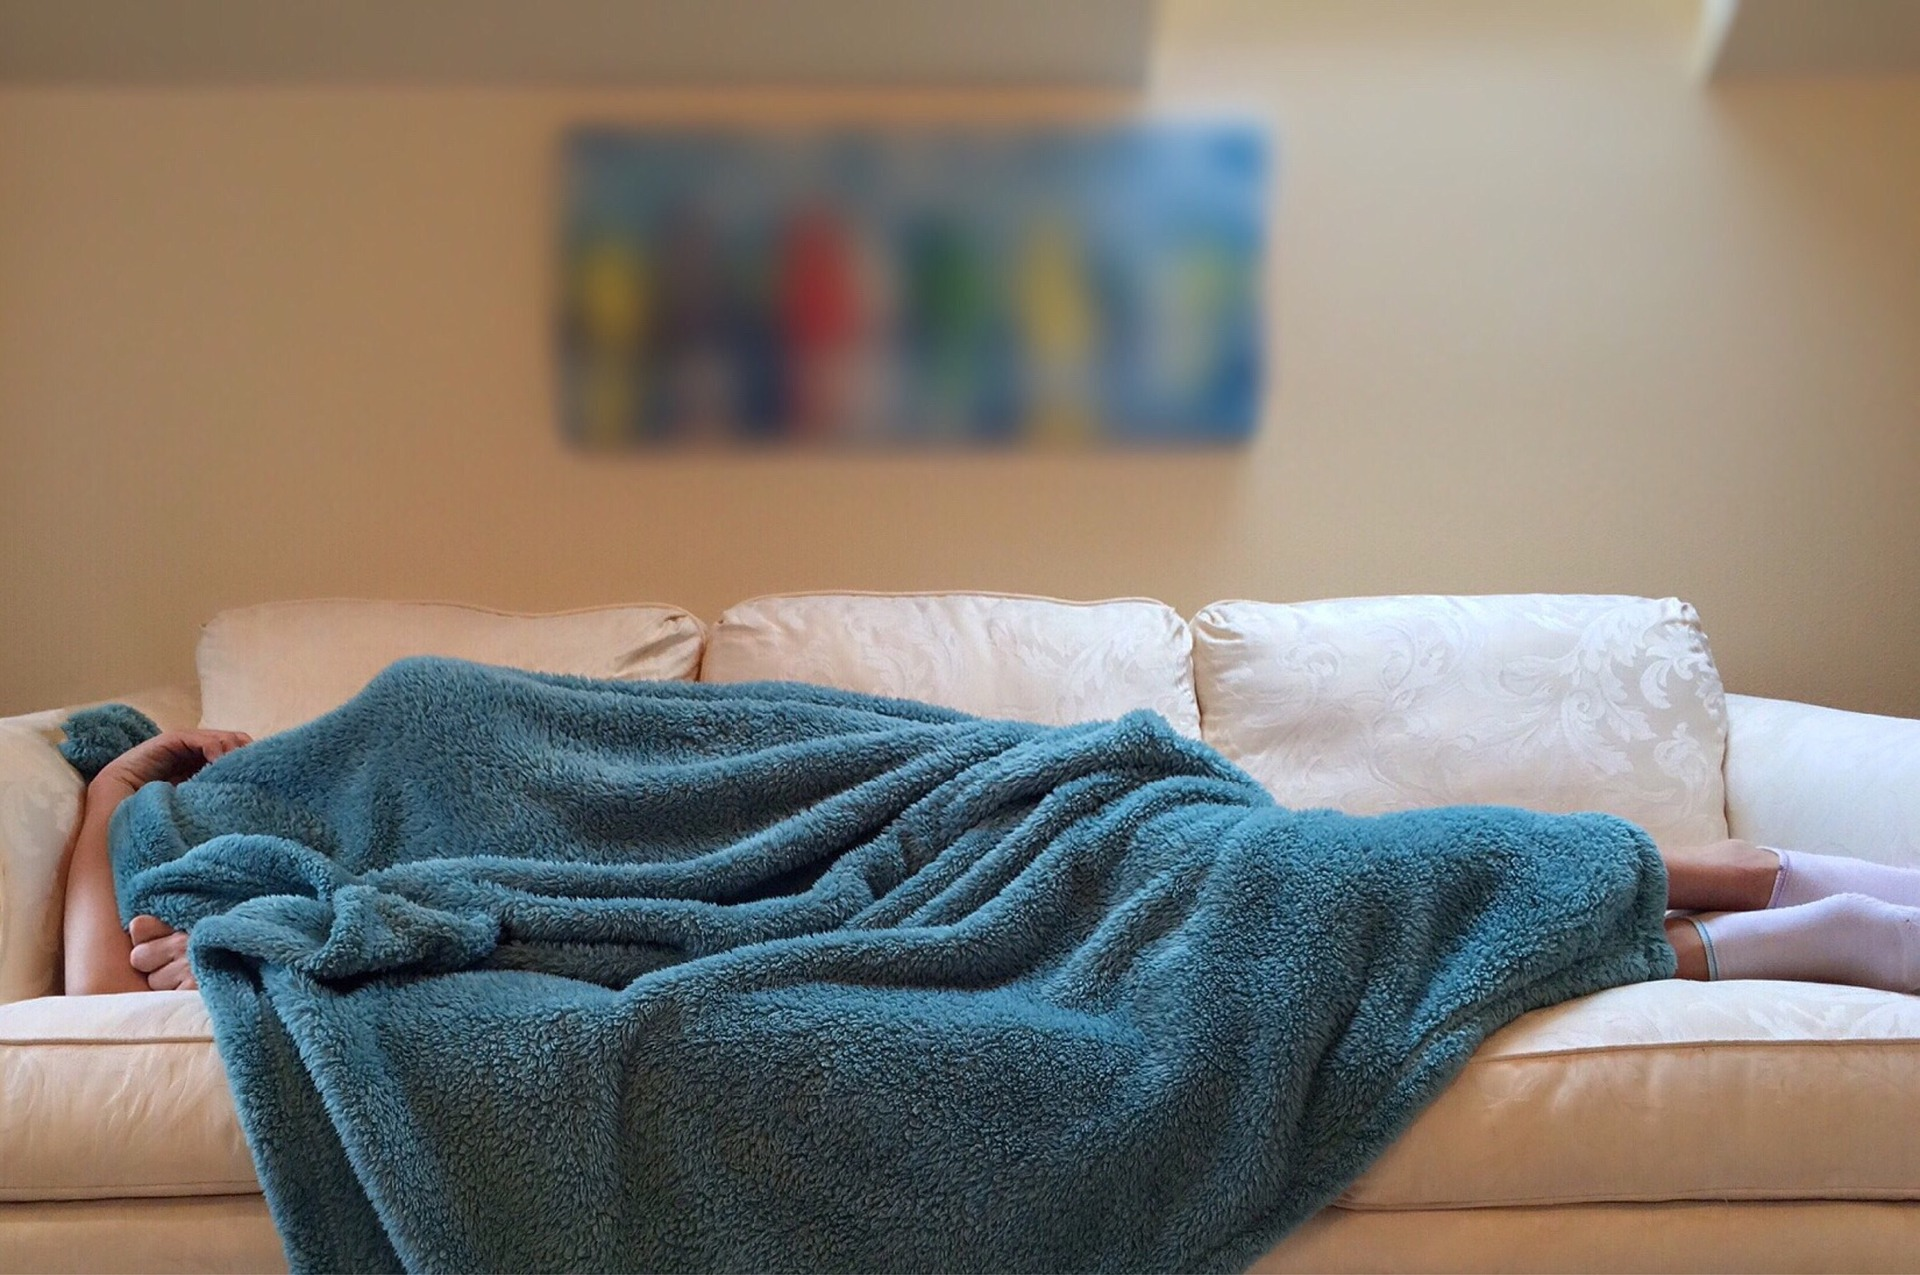 Sleeping with covers over head